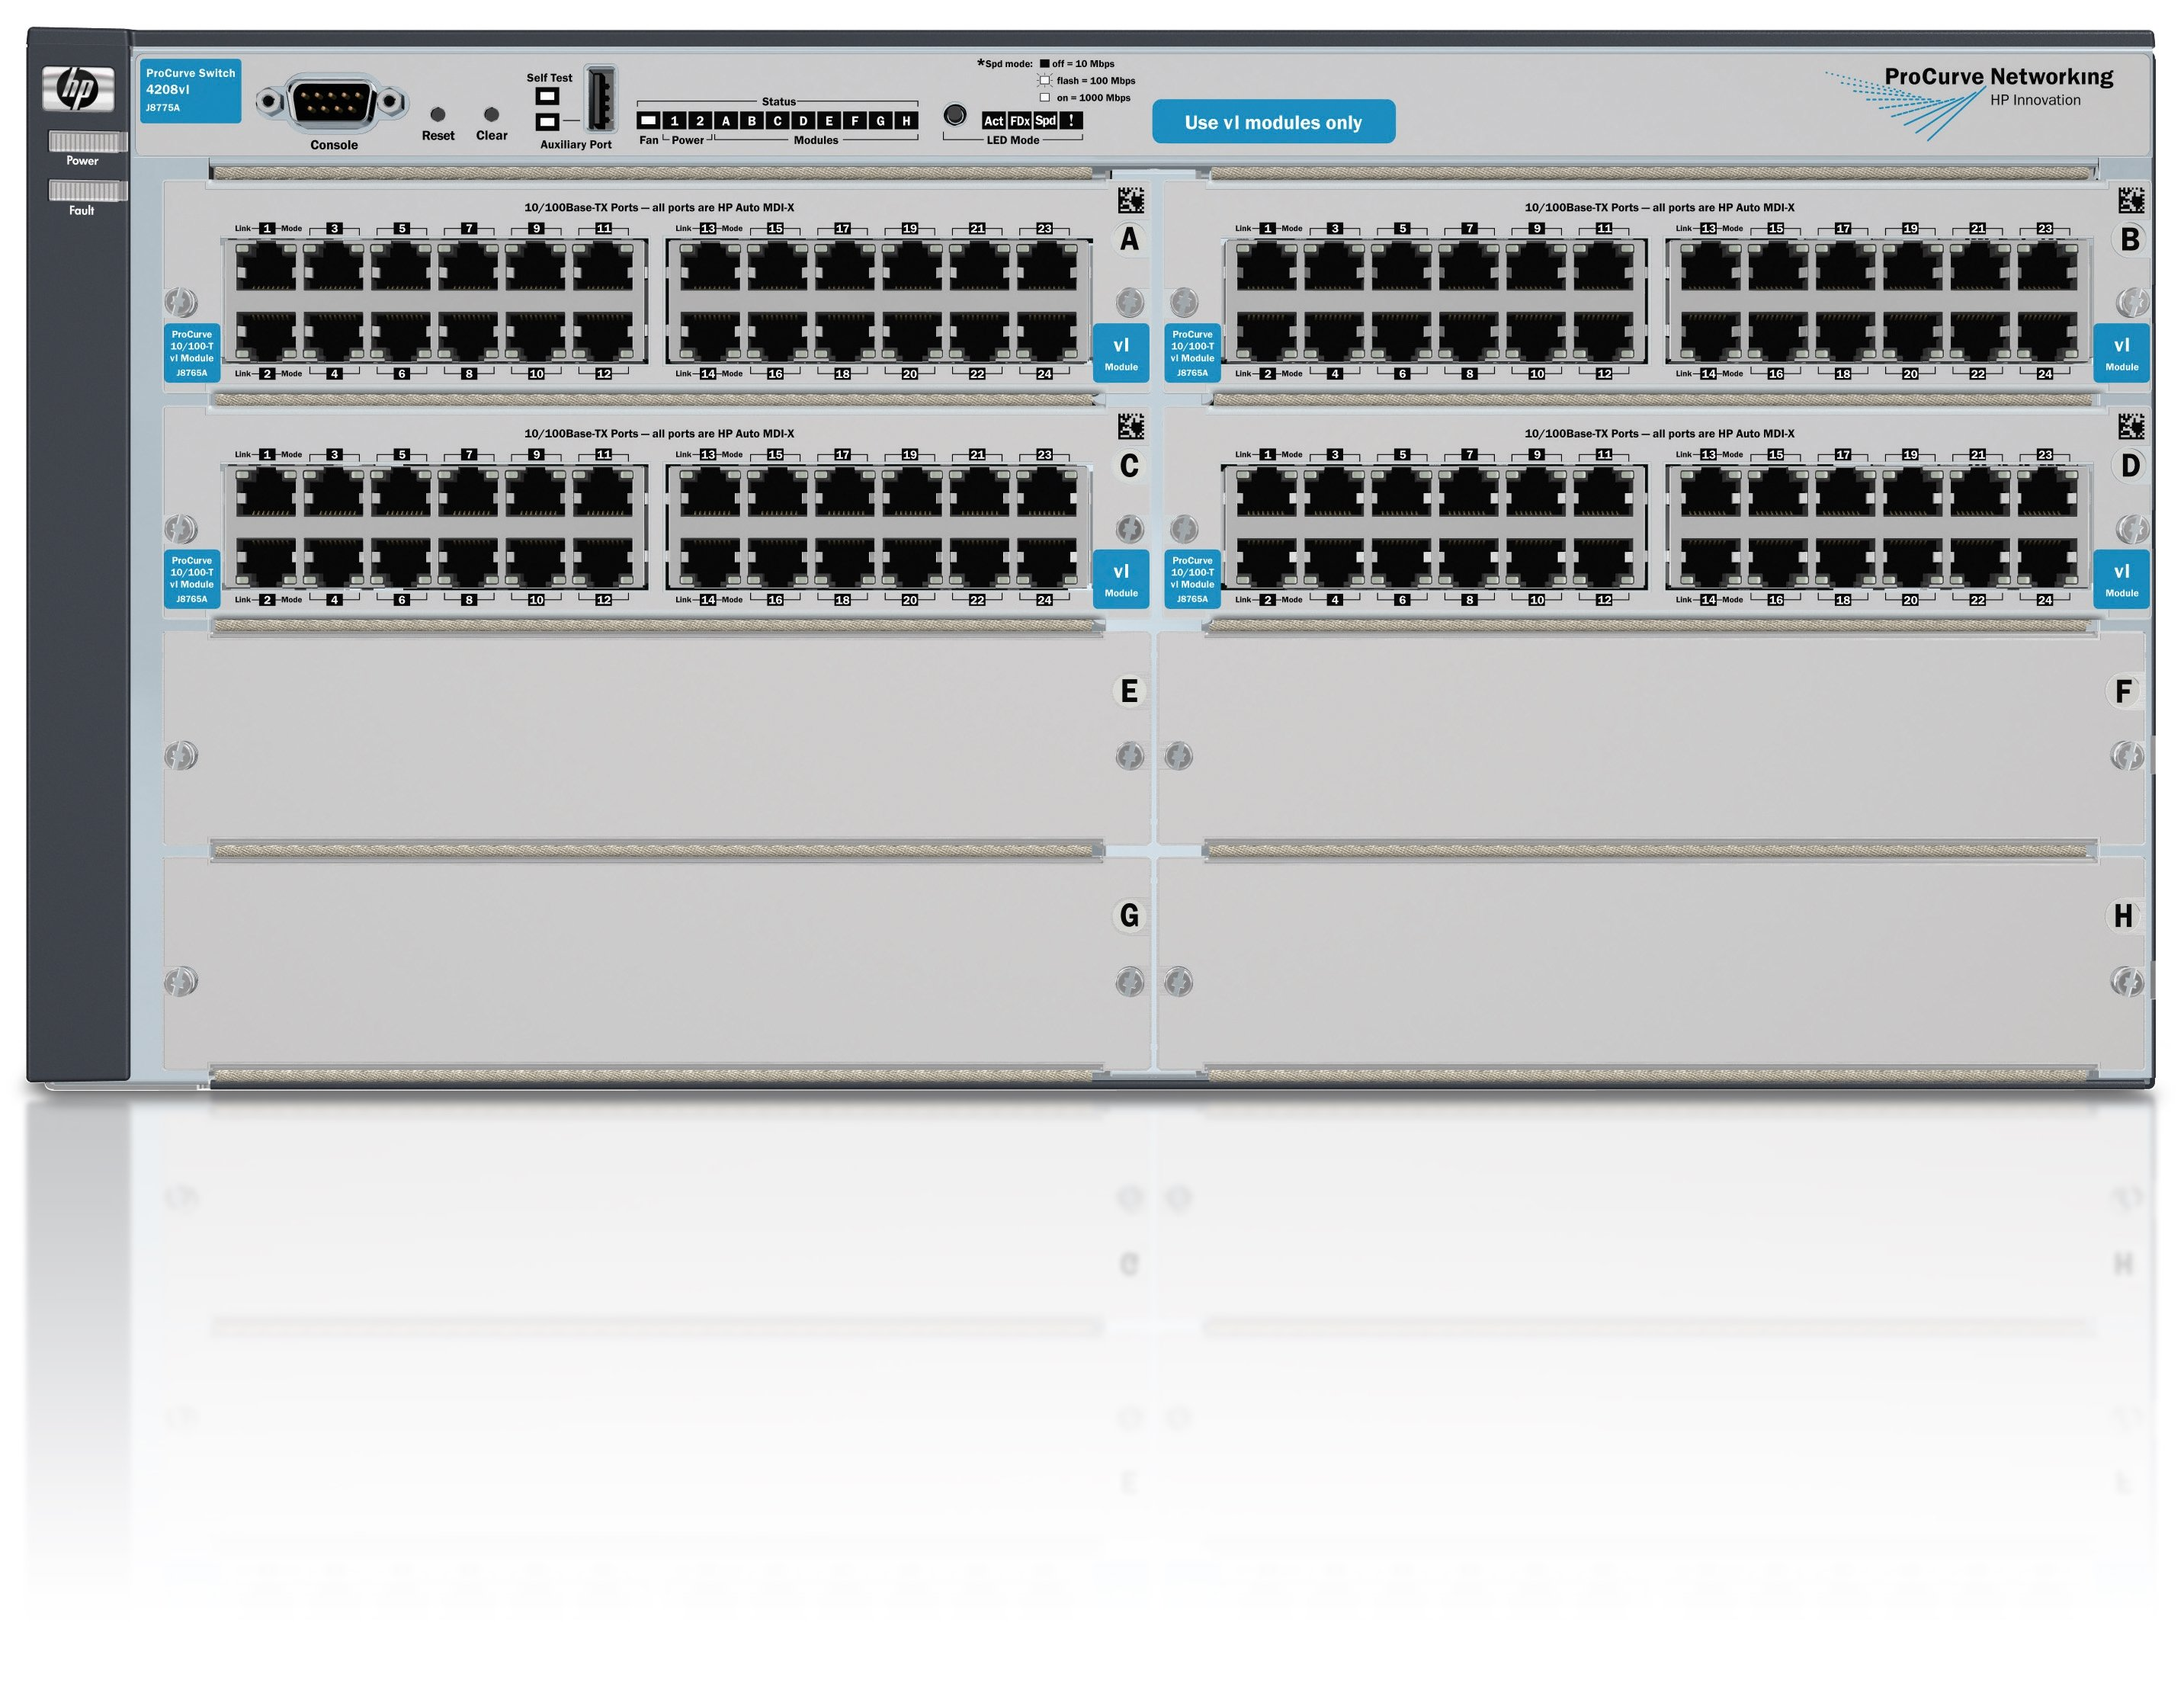 HPE 4208-96 vl Switchswitch - 96 ports - Managed - rack-mountable